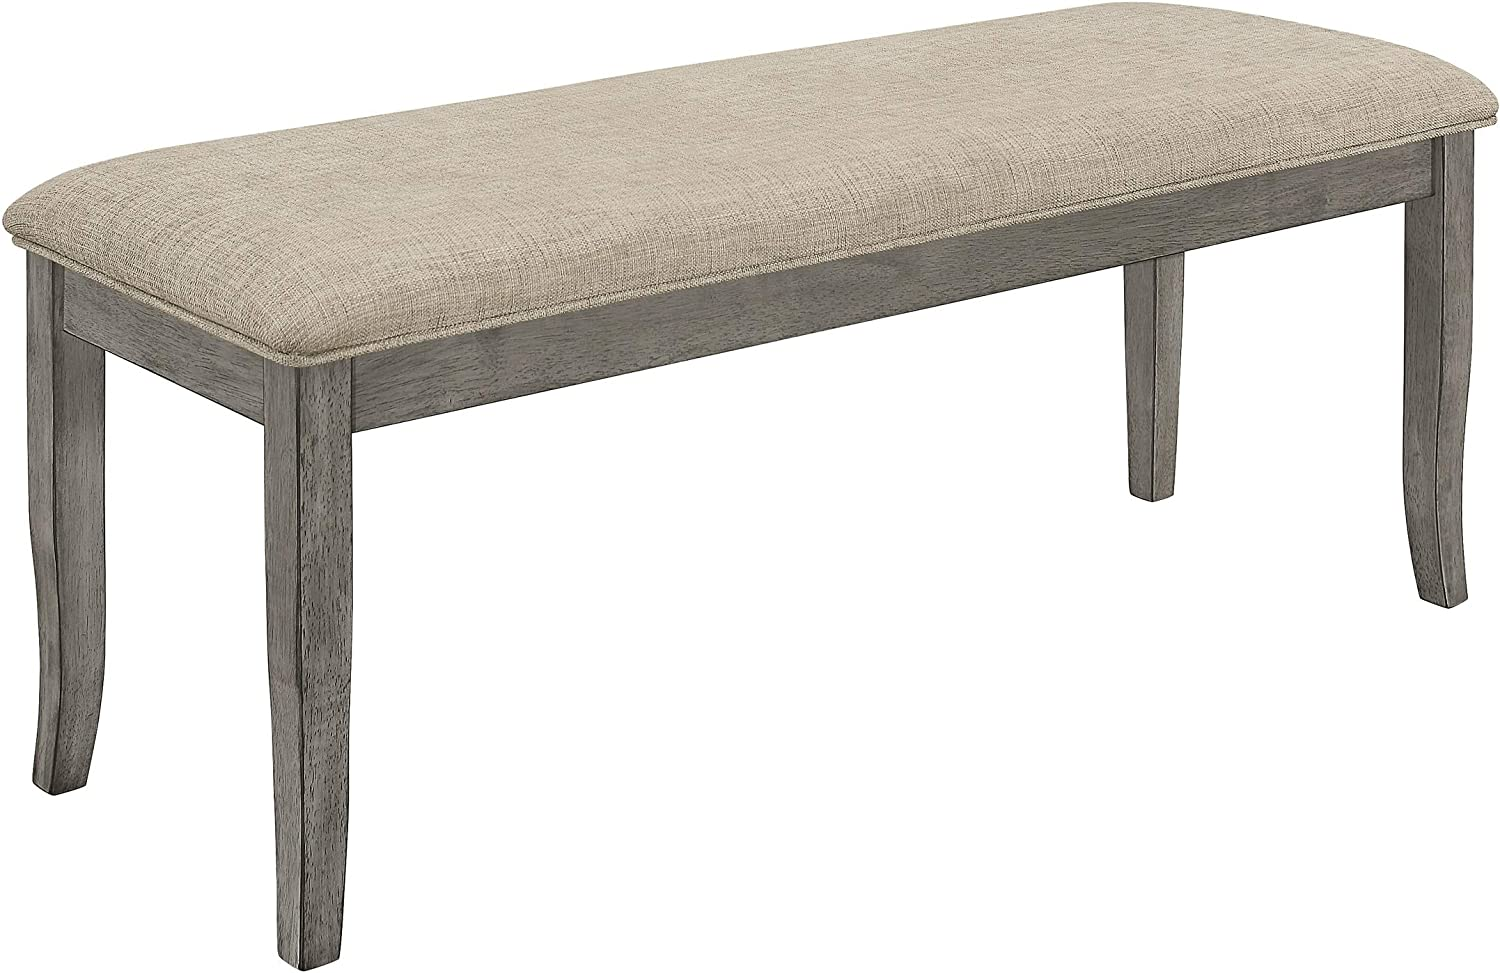 Unknown1 Furniture Dark Grey Rustic Max Inventory cleanup selling sale 60% OFF Woo Bench Traditional Dining